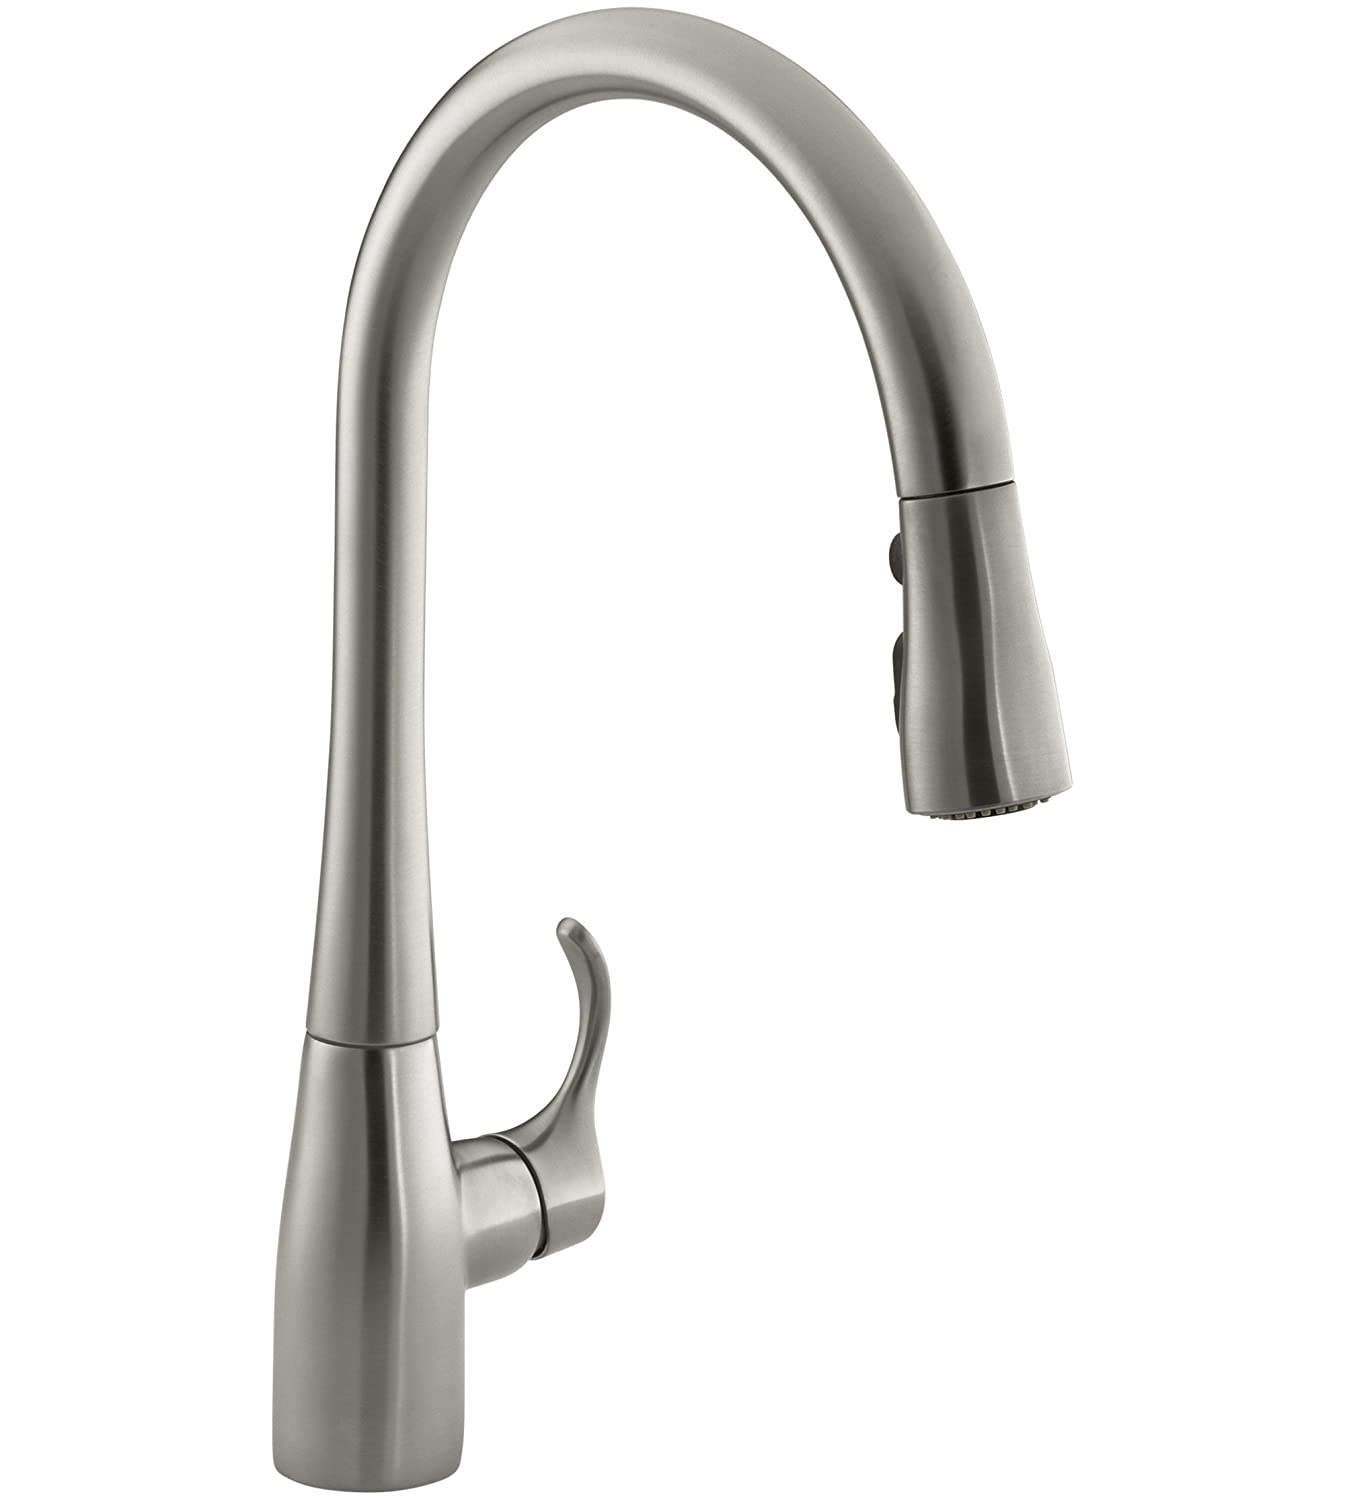 Best Water Conserving Kitchen Faucet Reviews 2